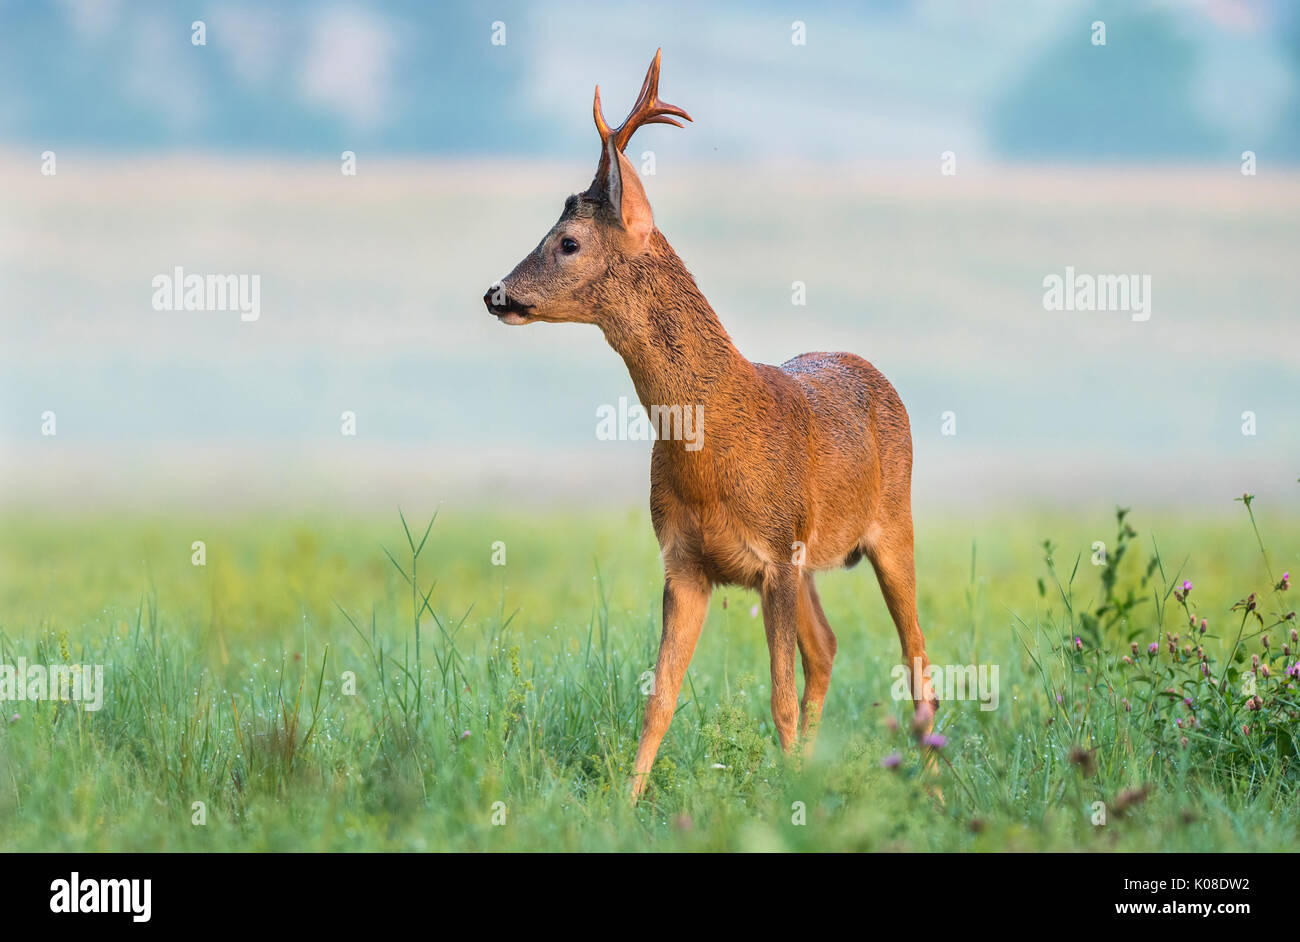 Roe buck with big antlers in a field - Stock Image